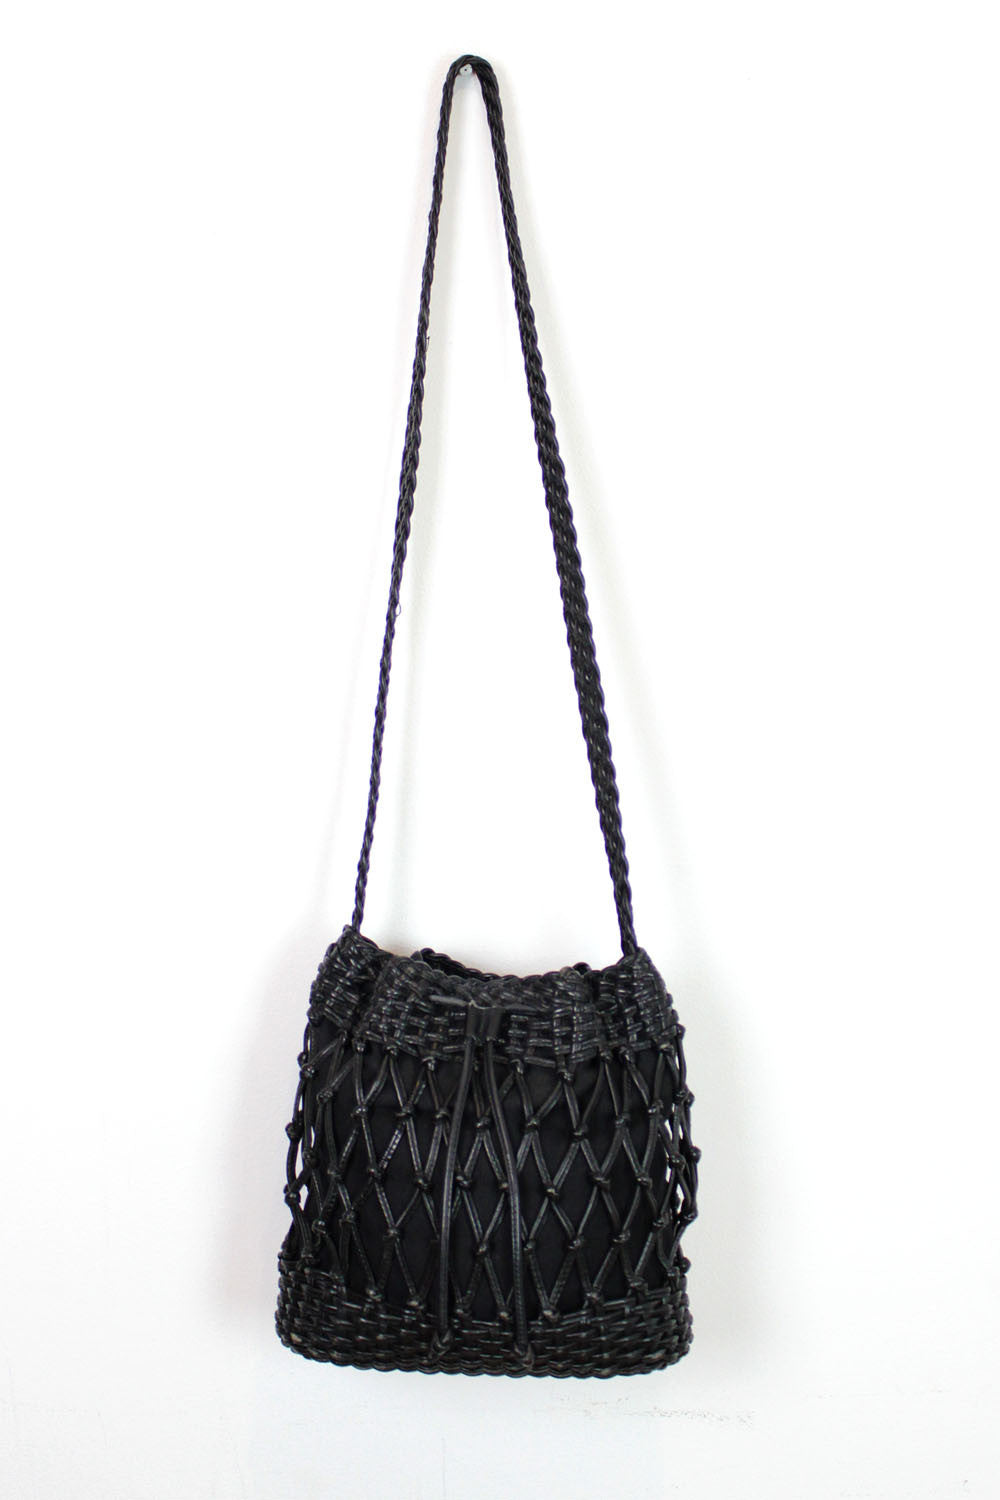 Netted bucket bag